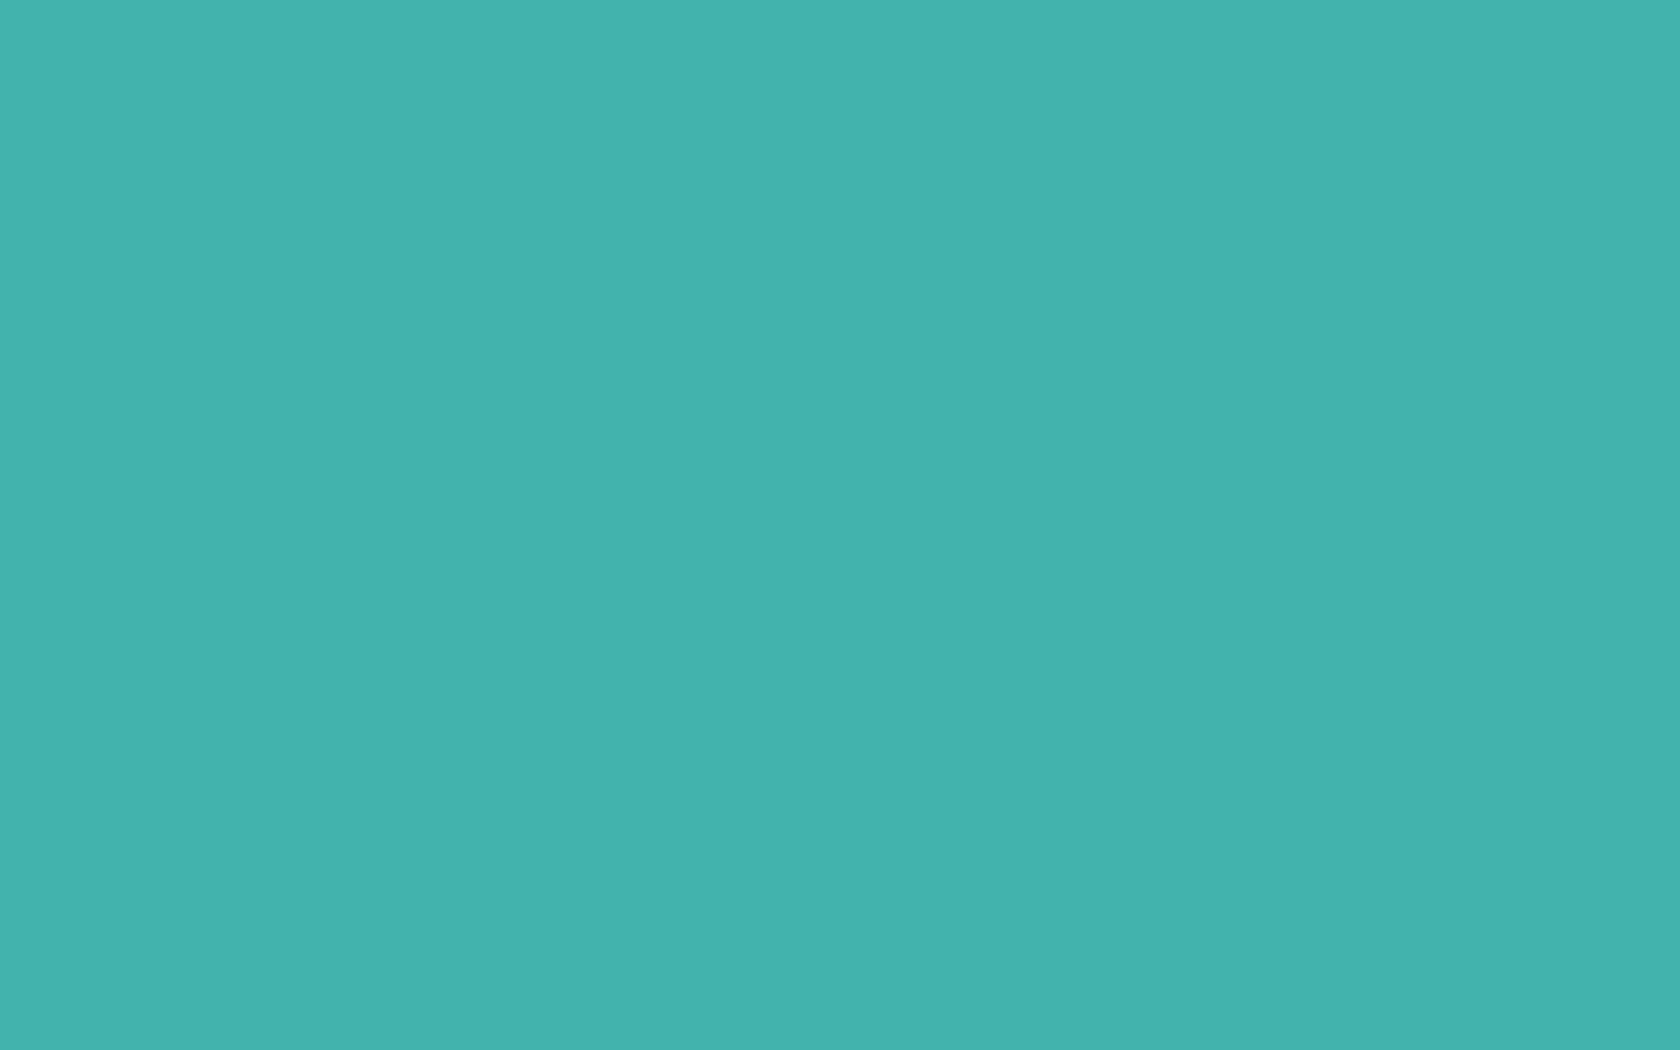 1680x1050 Verdigris Solid Color Background